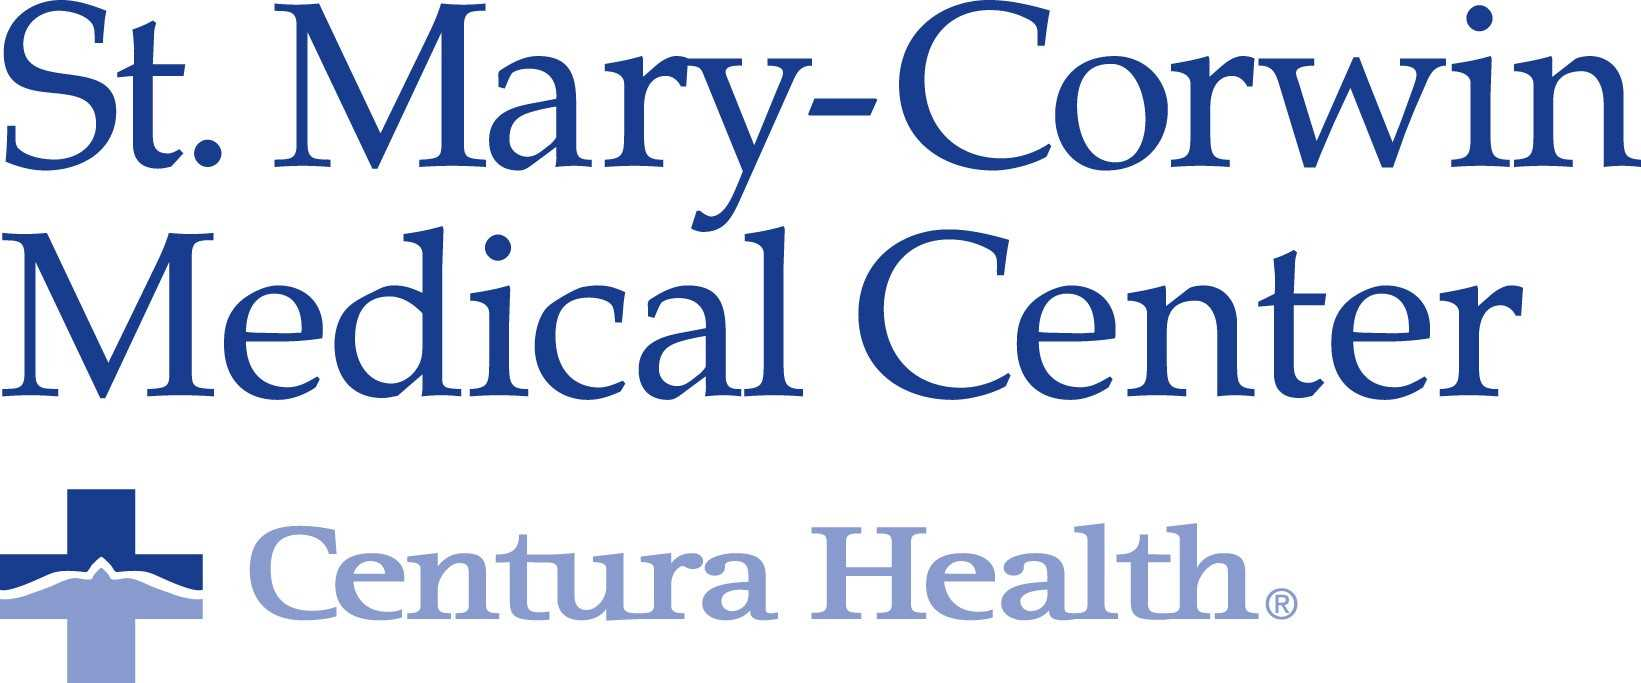 St. Mary Corwin Medical Center